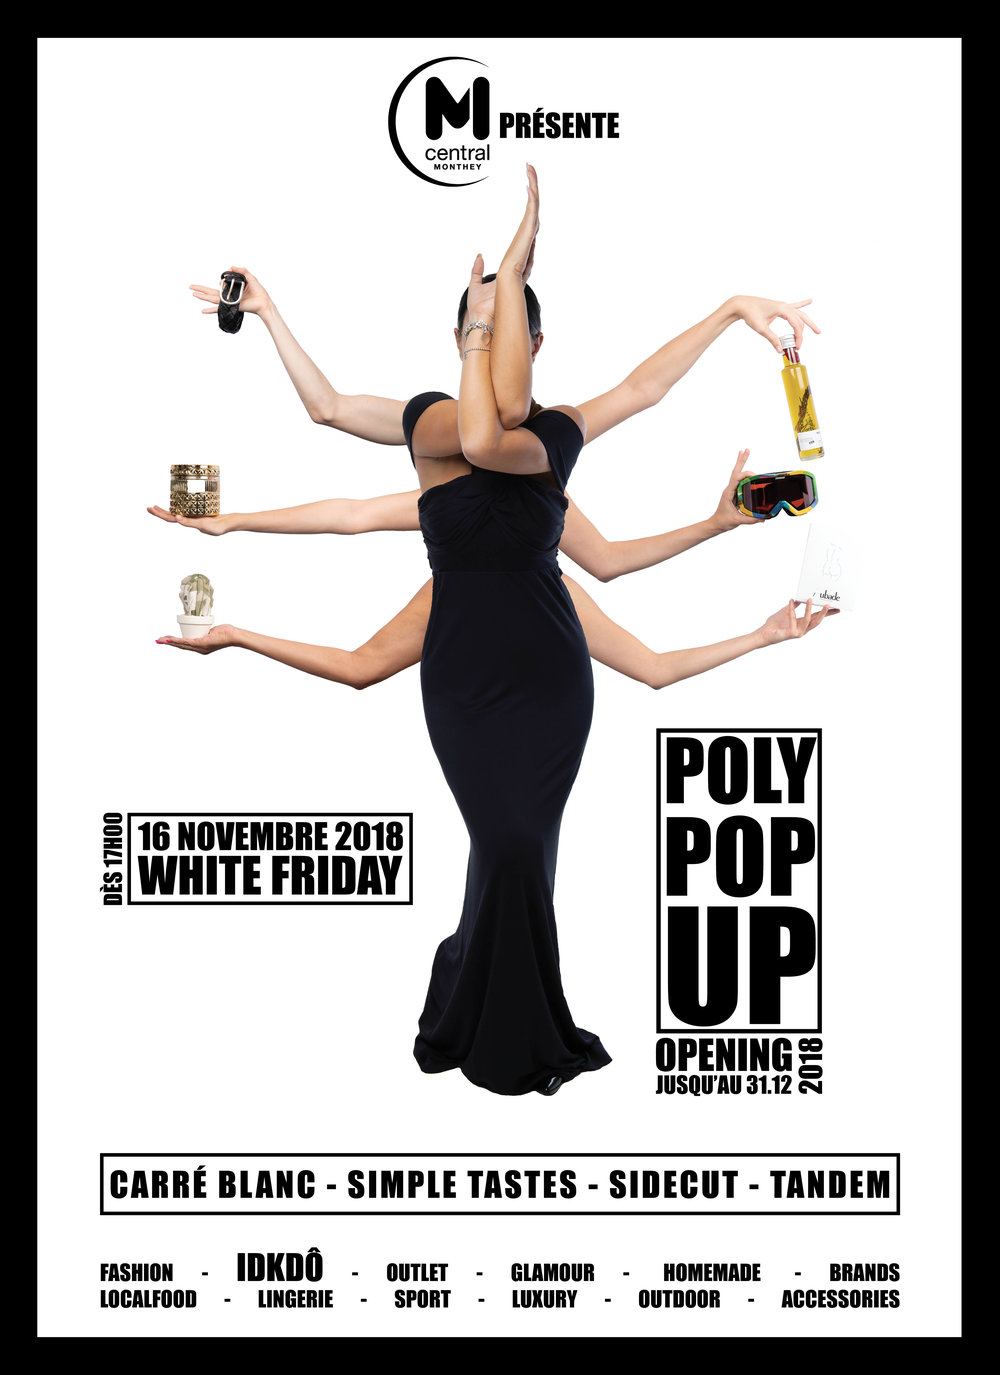 Affiche Poly pop up finale.jpg